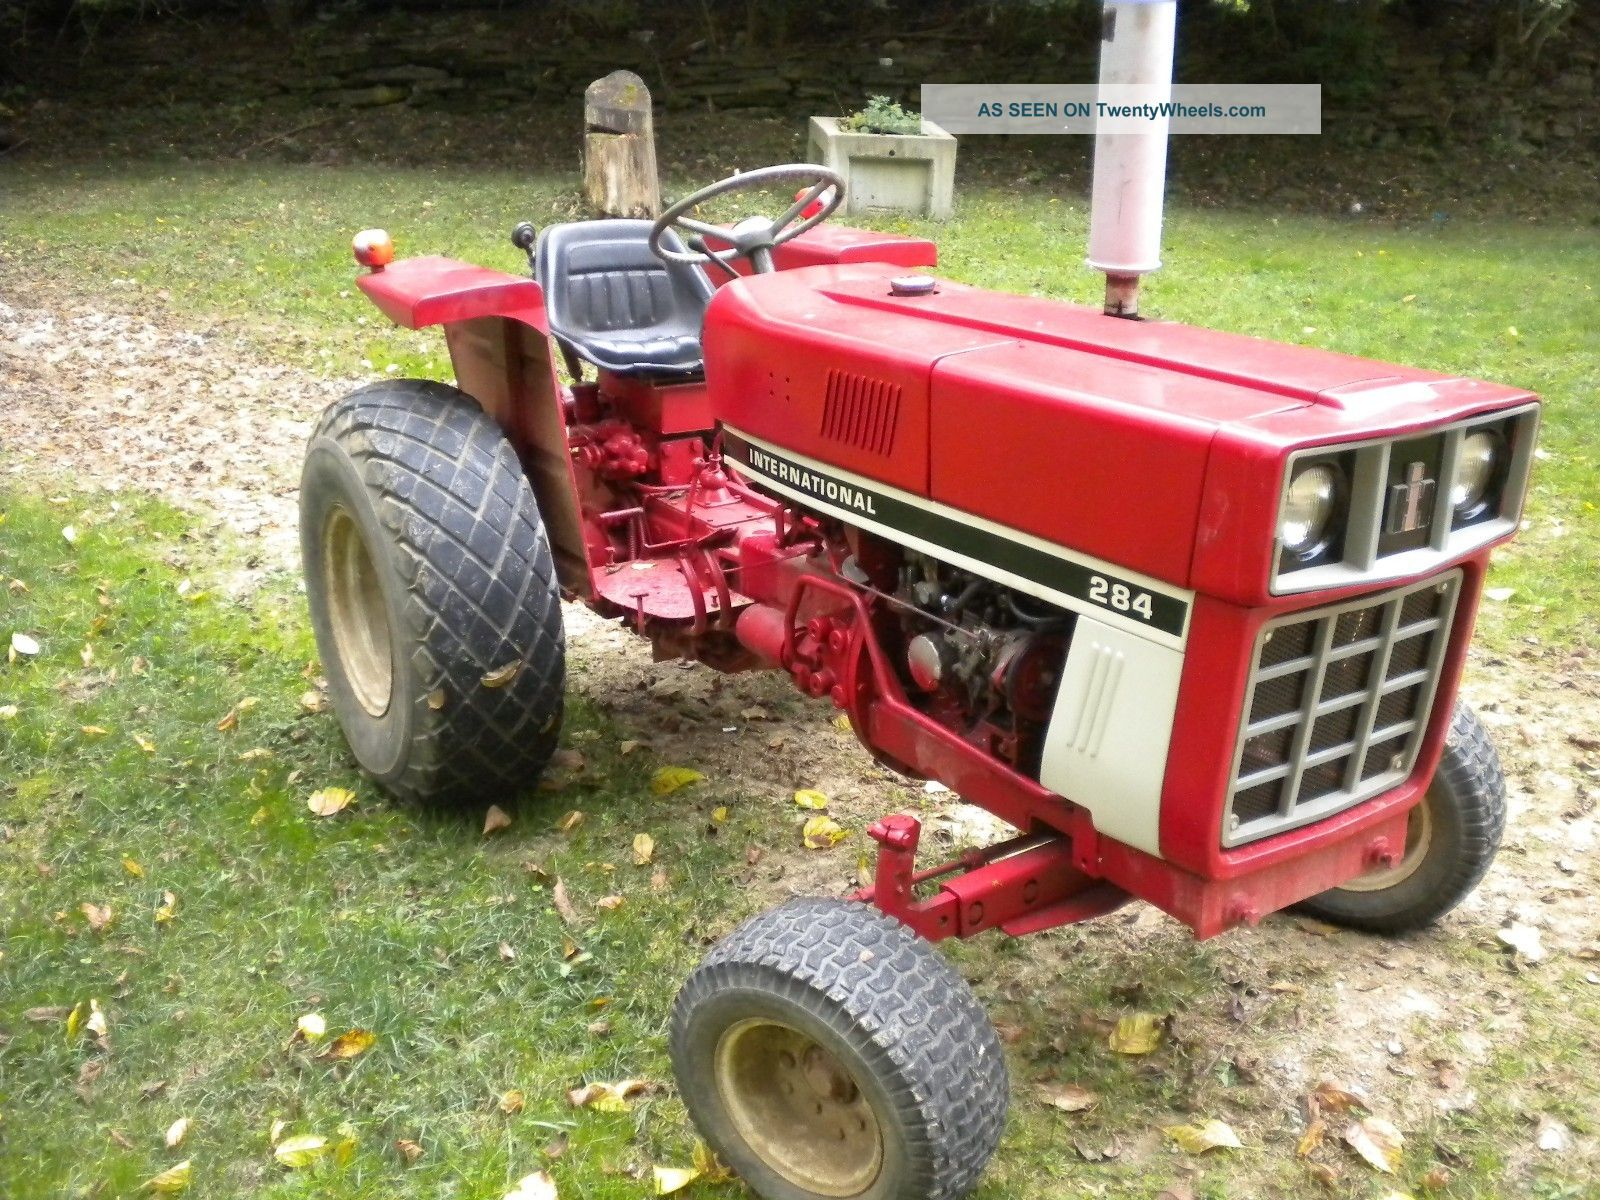 Offset Compact IH-S-274,284, Table INTRODUCTION. Buy International  Harvester Tractor manuals and get Free Shipping. Write review purchase  price ...